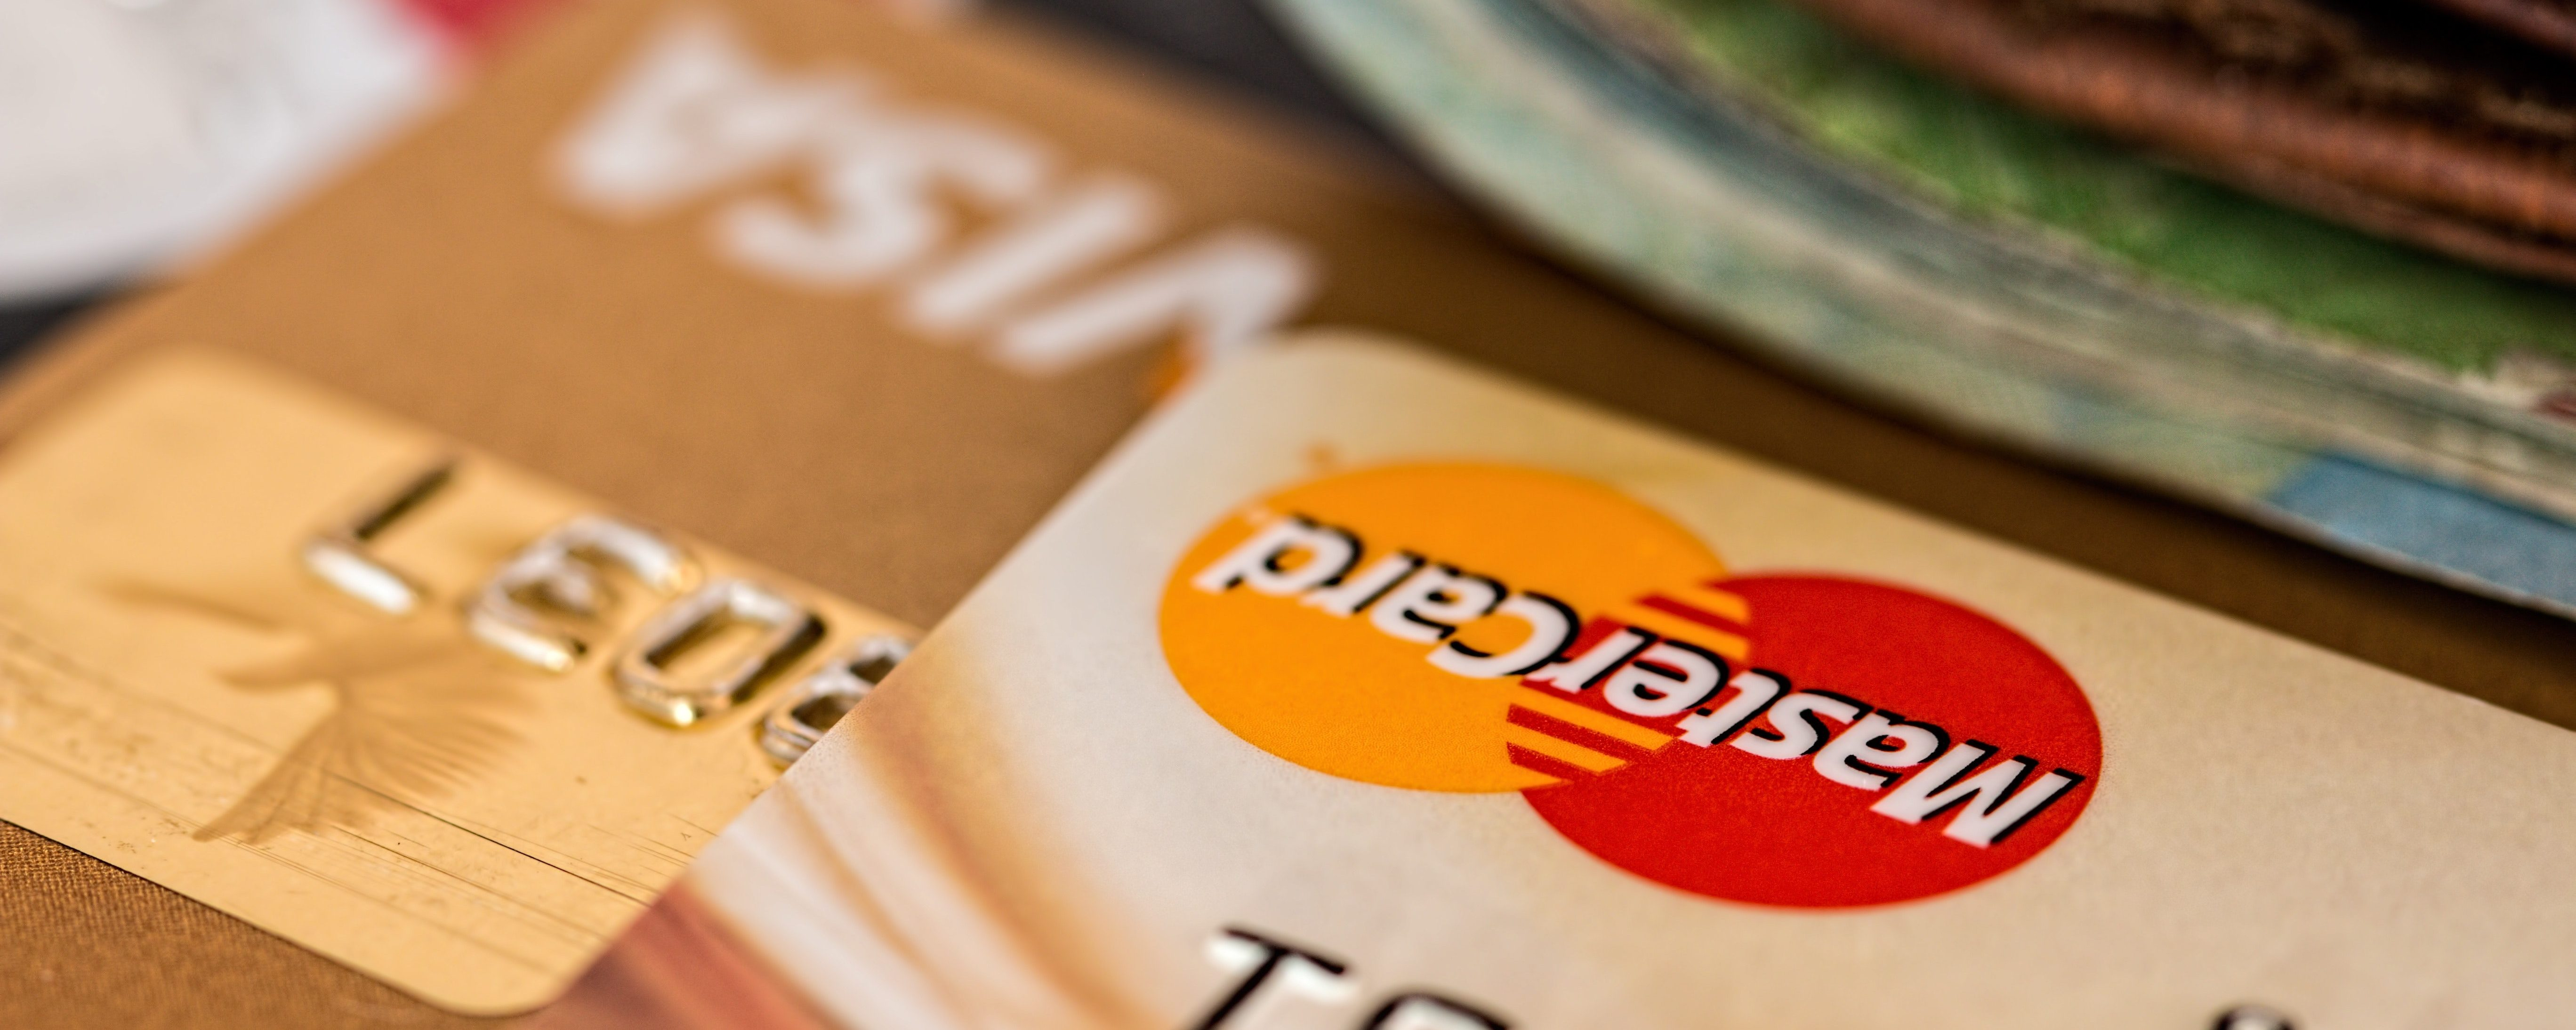 Mobile payment in crescita: nasce Google Pay